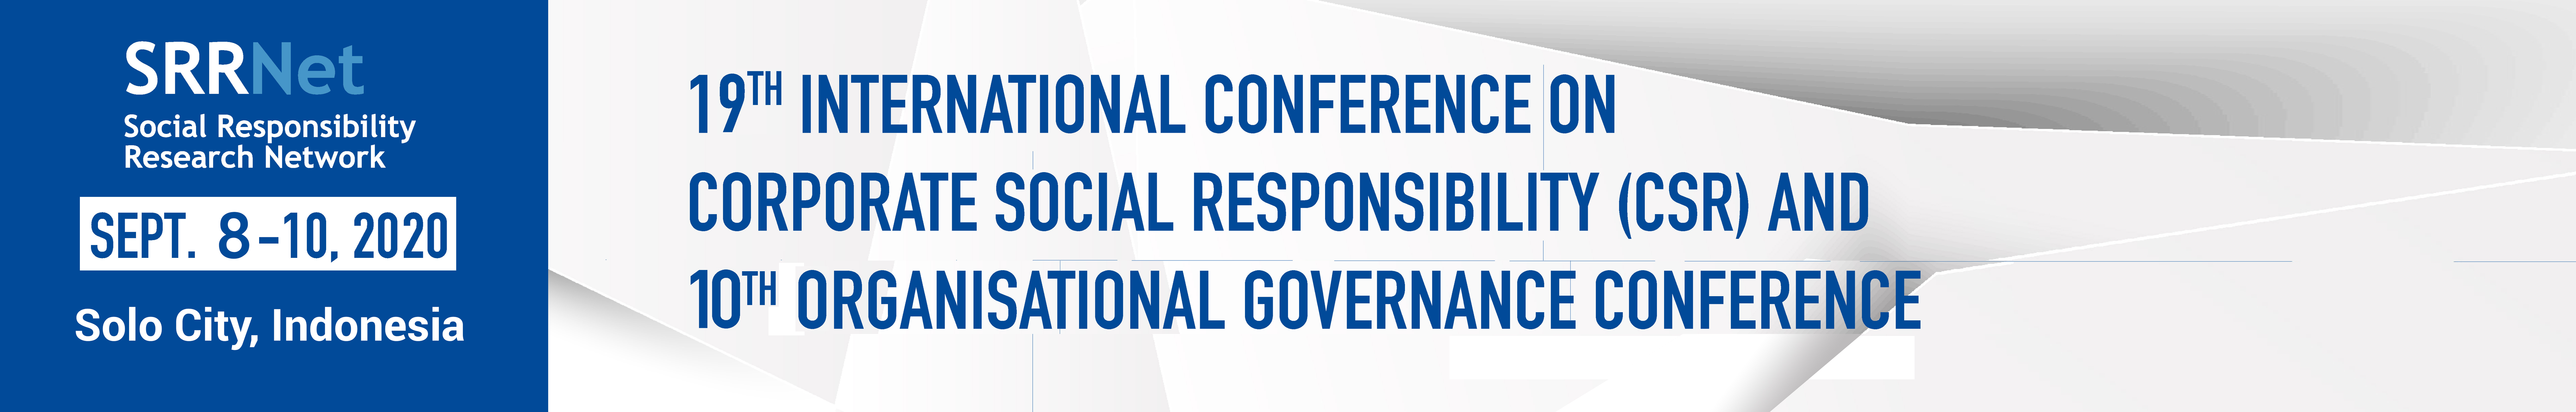 19th International Conference on Corporate Social Responsibility